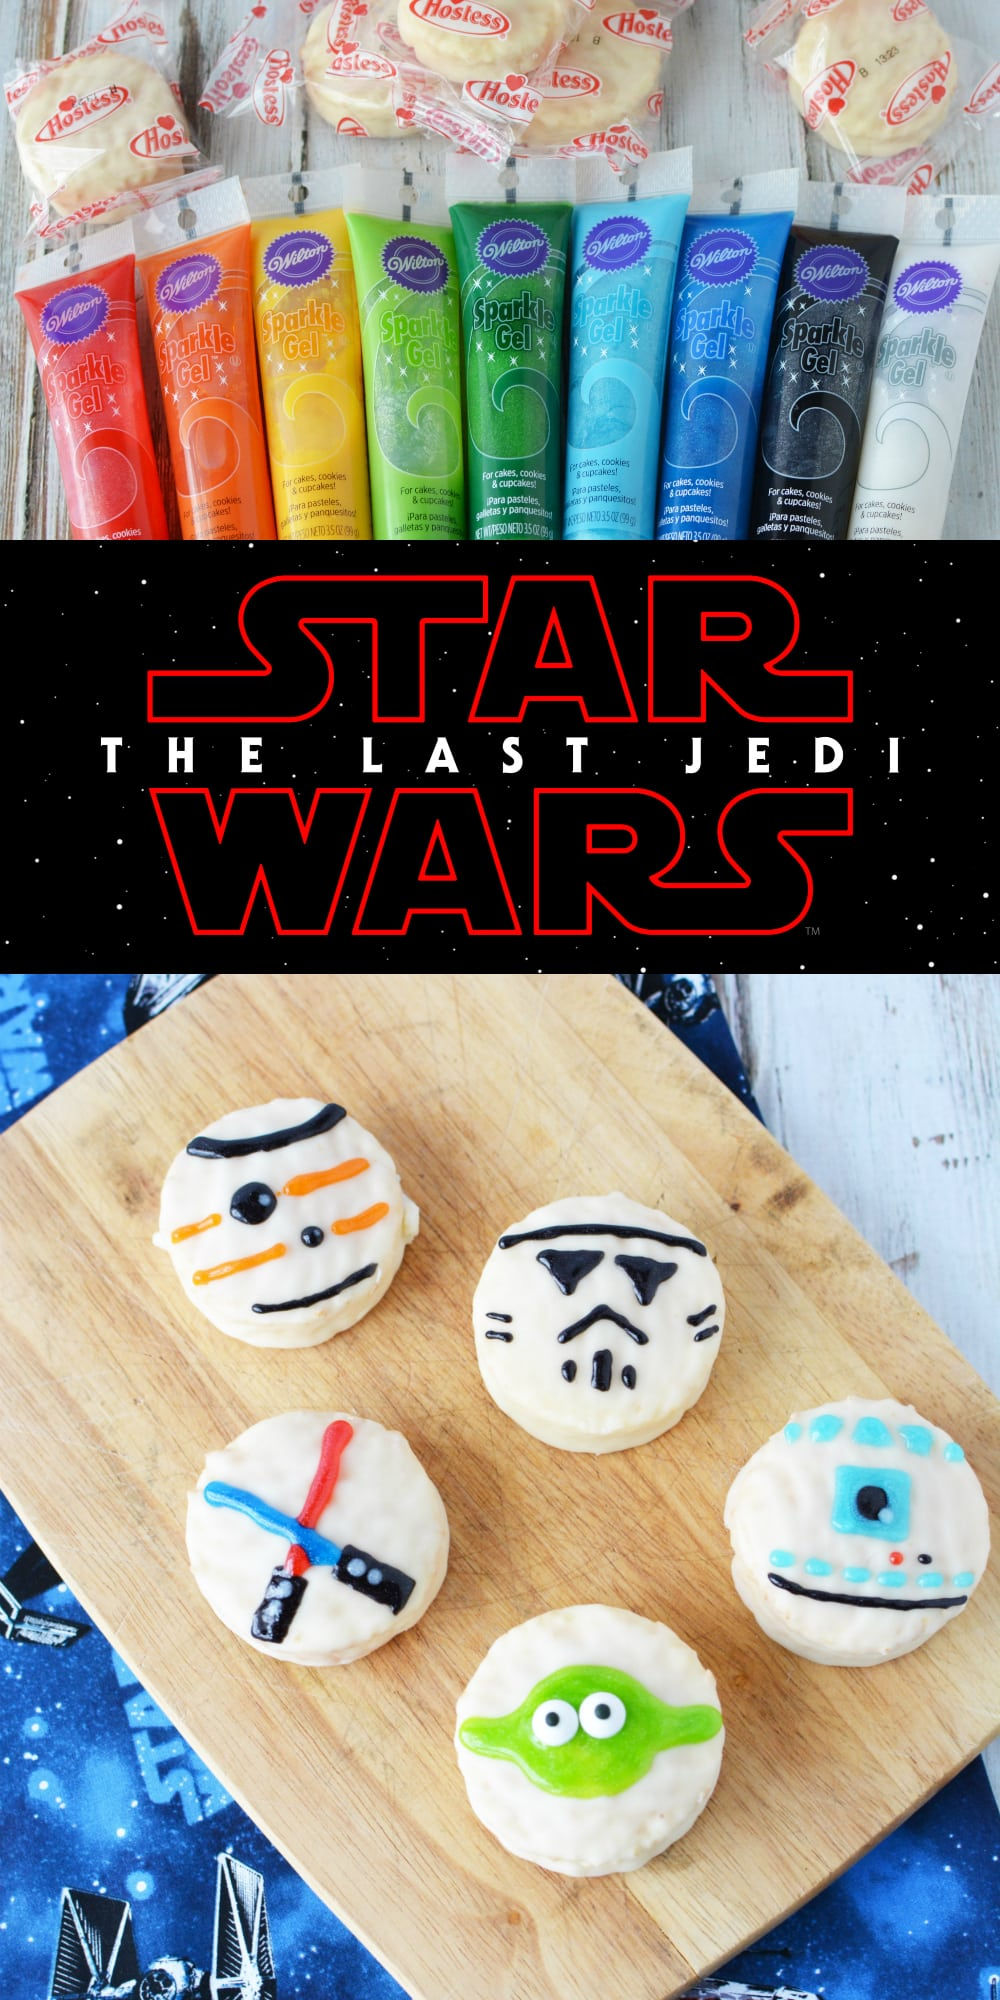 Star Wars themed snacks and treats for any occasion! #StarWars #TheLastJedi